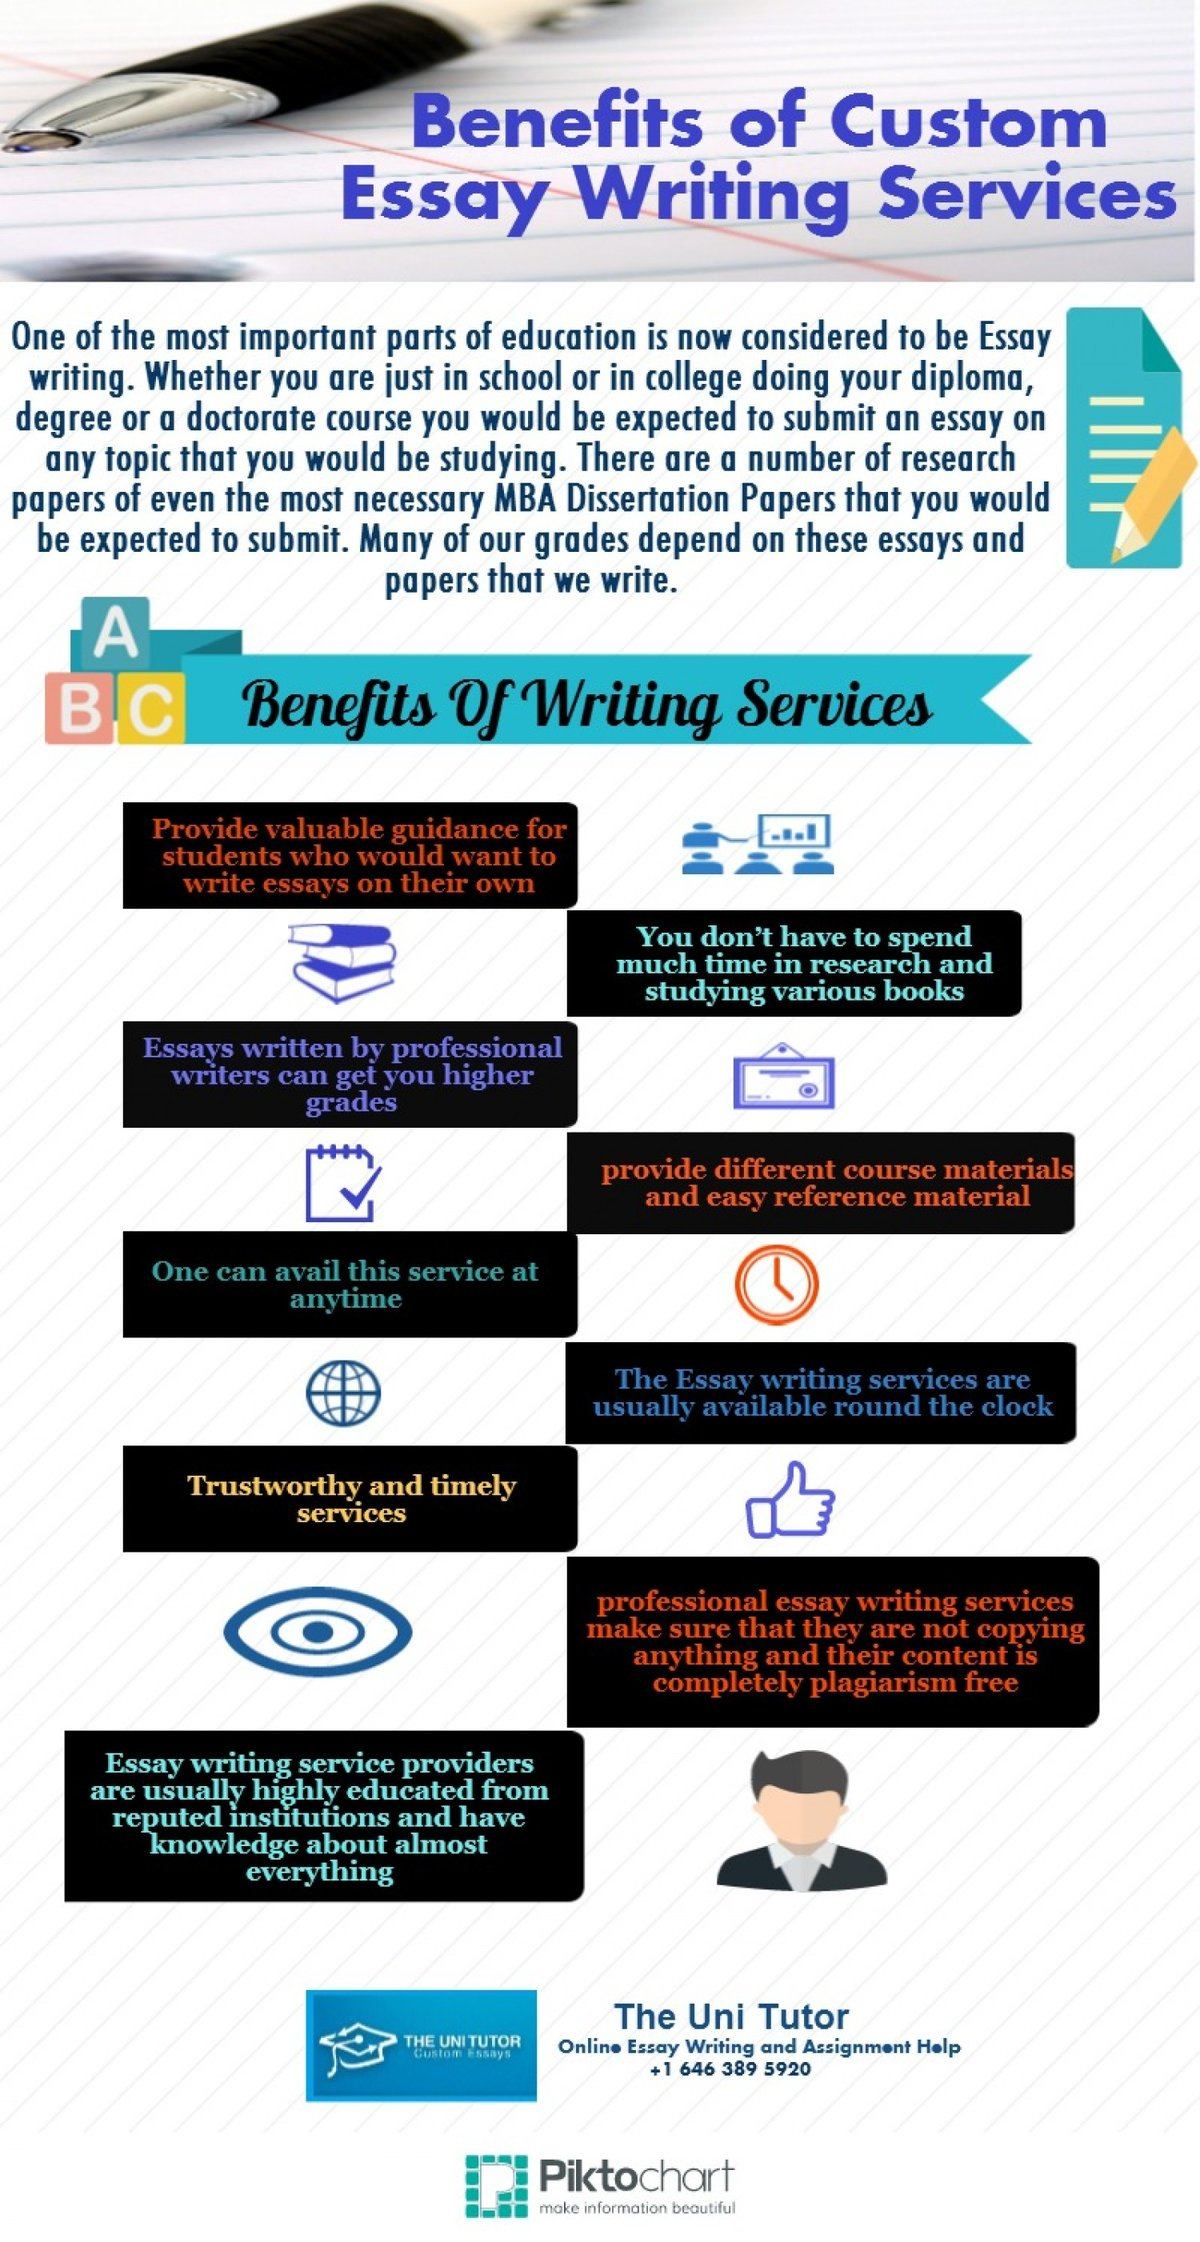 what v custom essay writing service Essay writing service get started with the best essay writing service around simply send us your essay question, and we'll locate an expertly qualified writer to create an answer like no other.